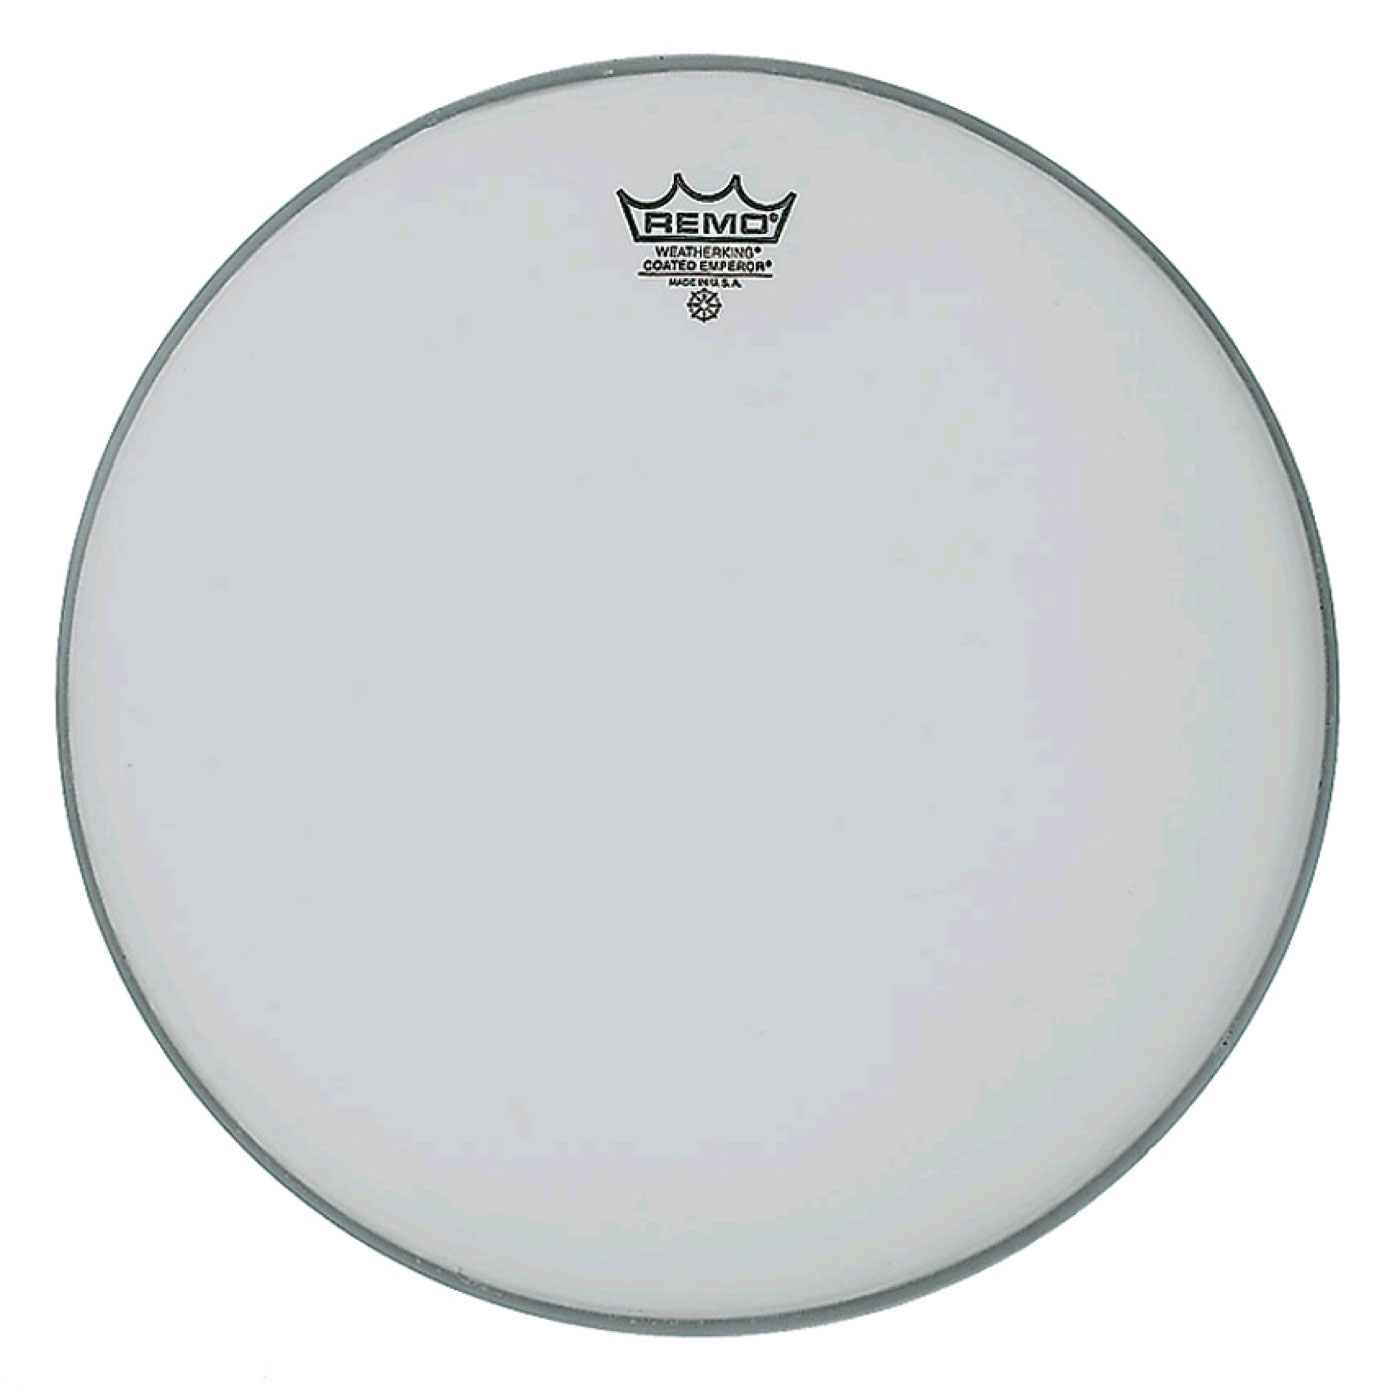 "Remo 15"" Emperor Coated Drum Head"